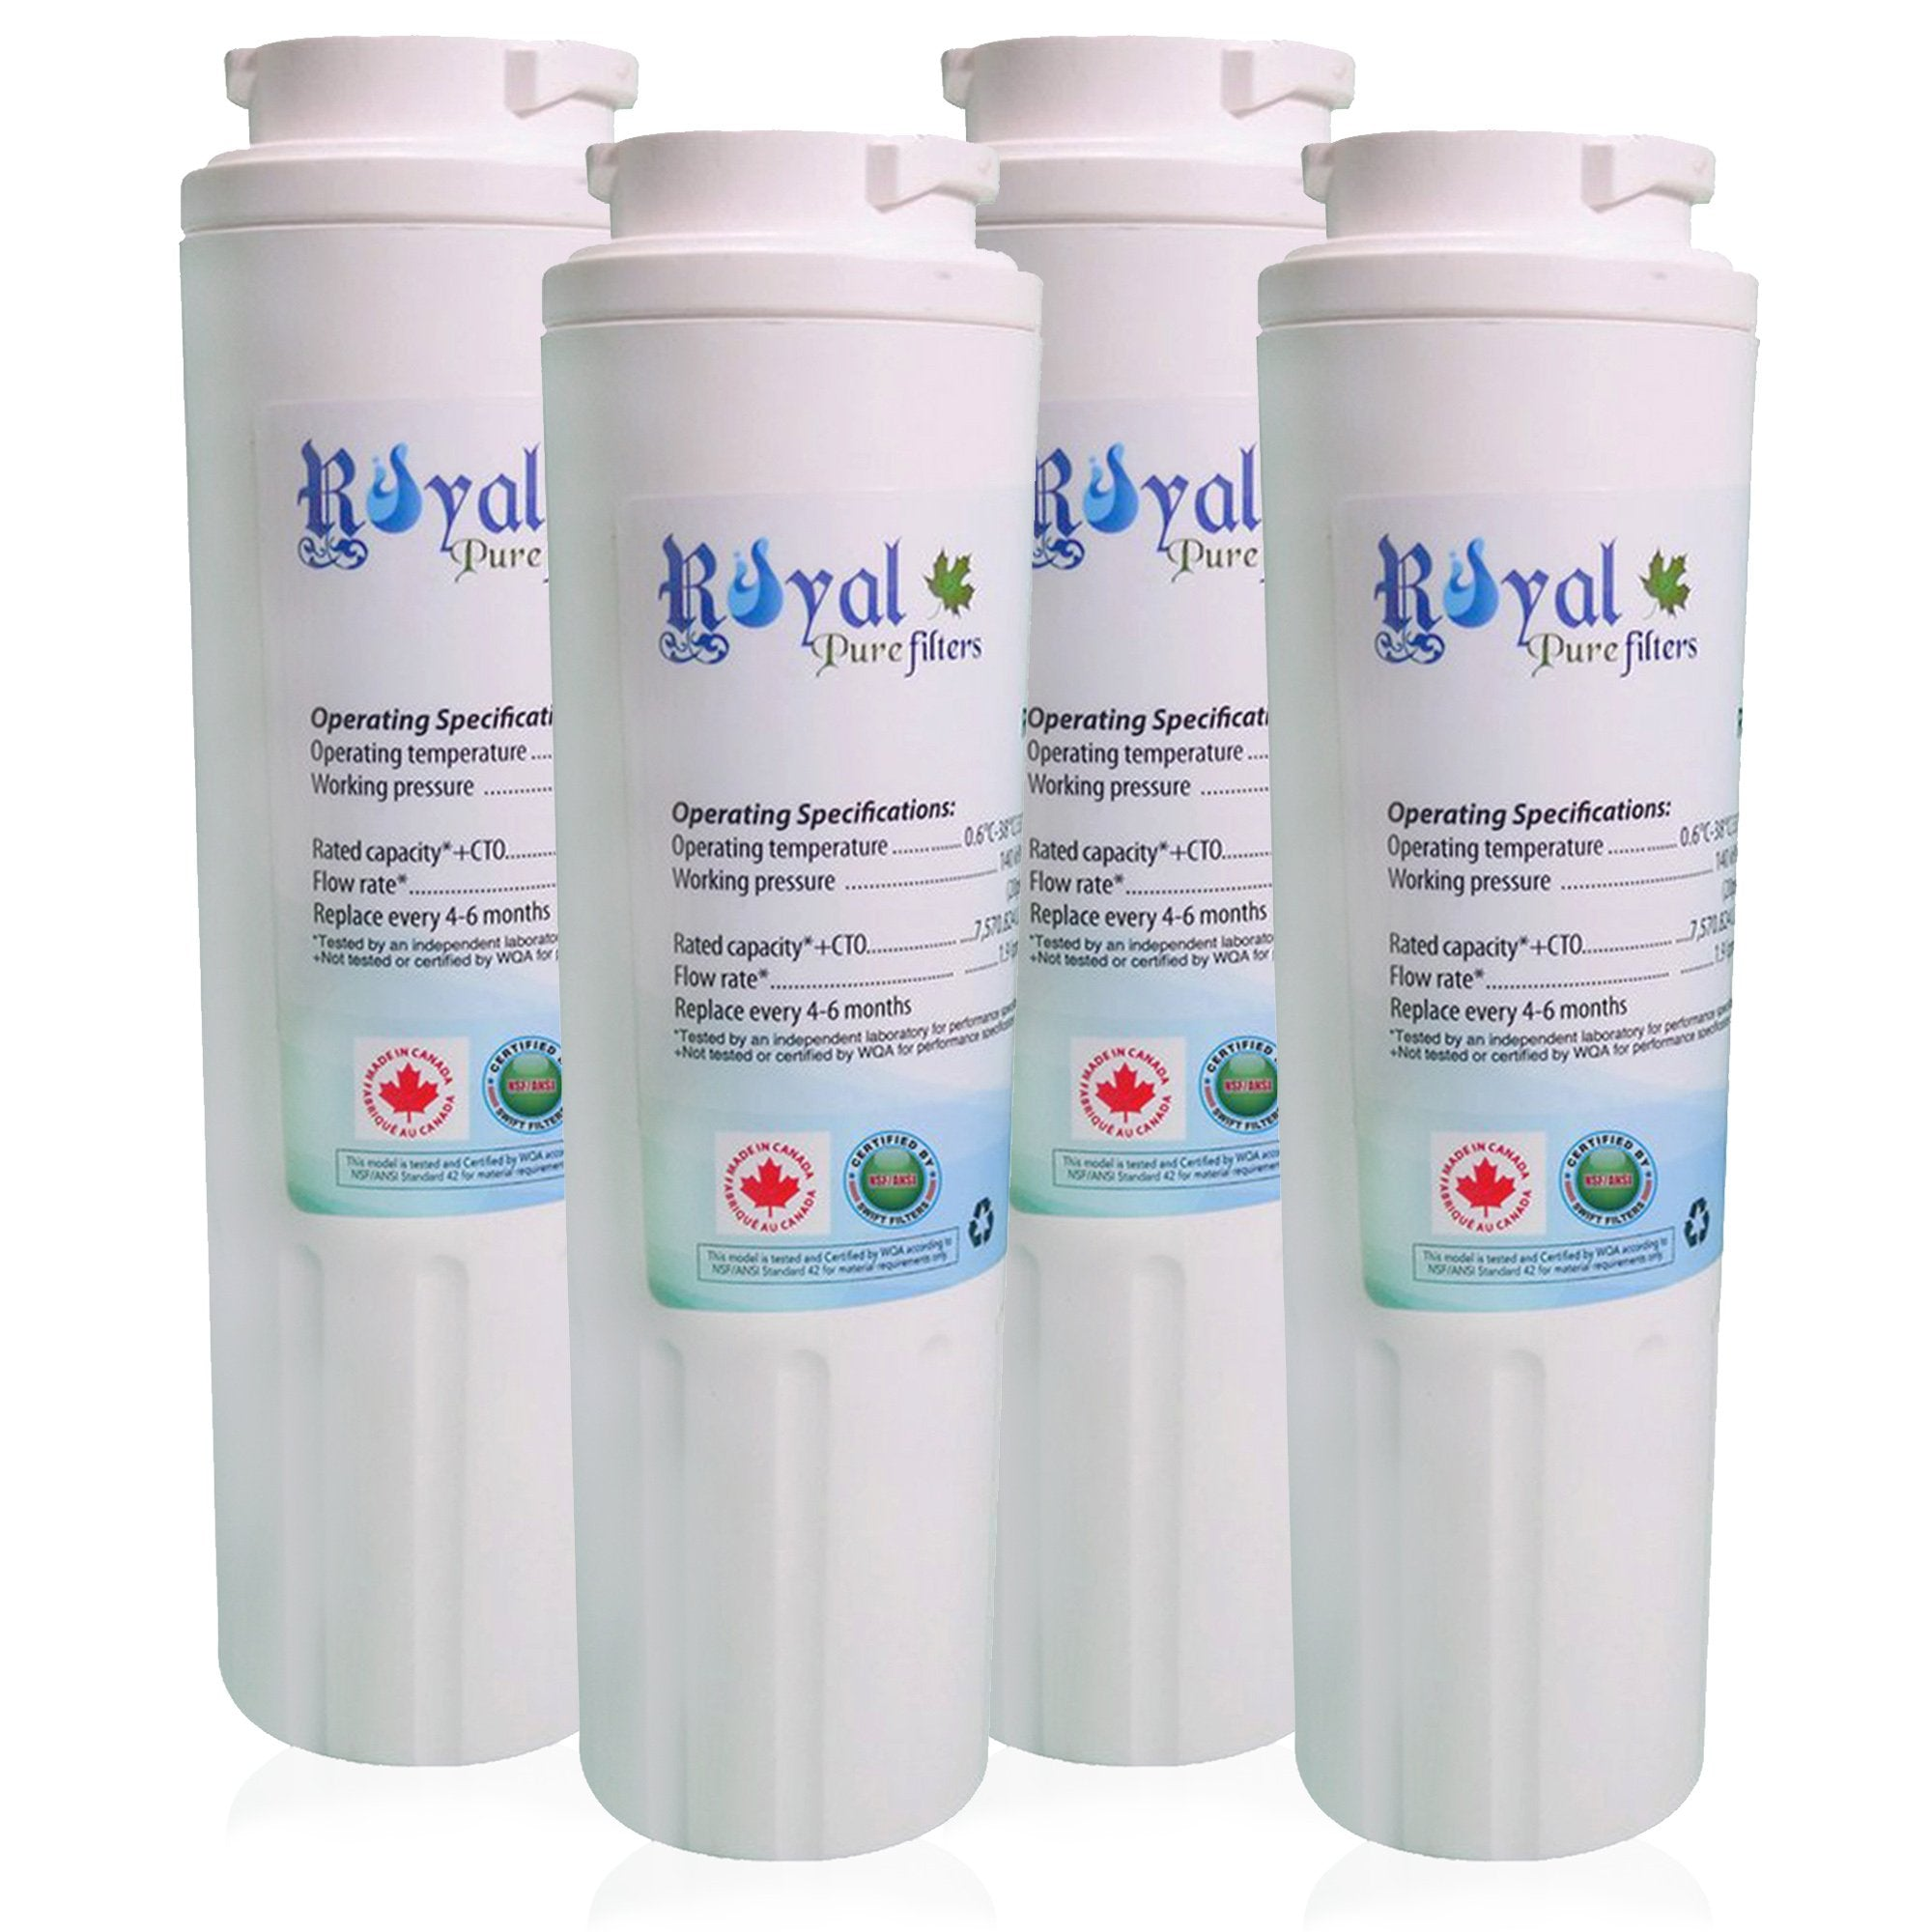 EveryDrop EDR4RXD1, Maytag Ukf8001 & Whirlpool 4396395 Compatible CTO Refrigerator Water Filter 4 PACK